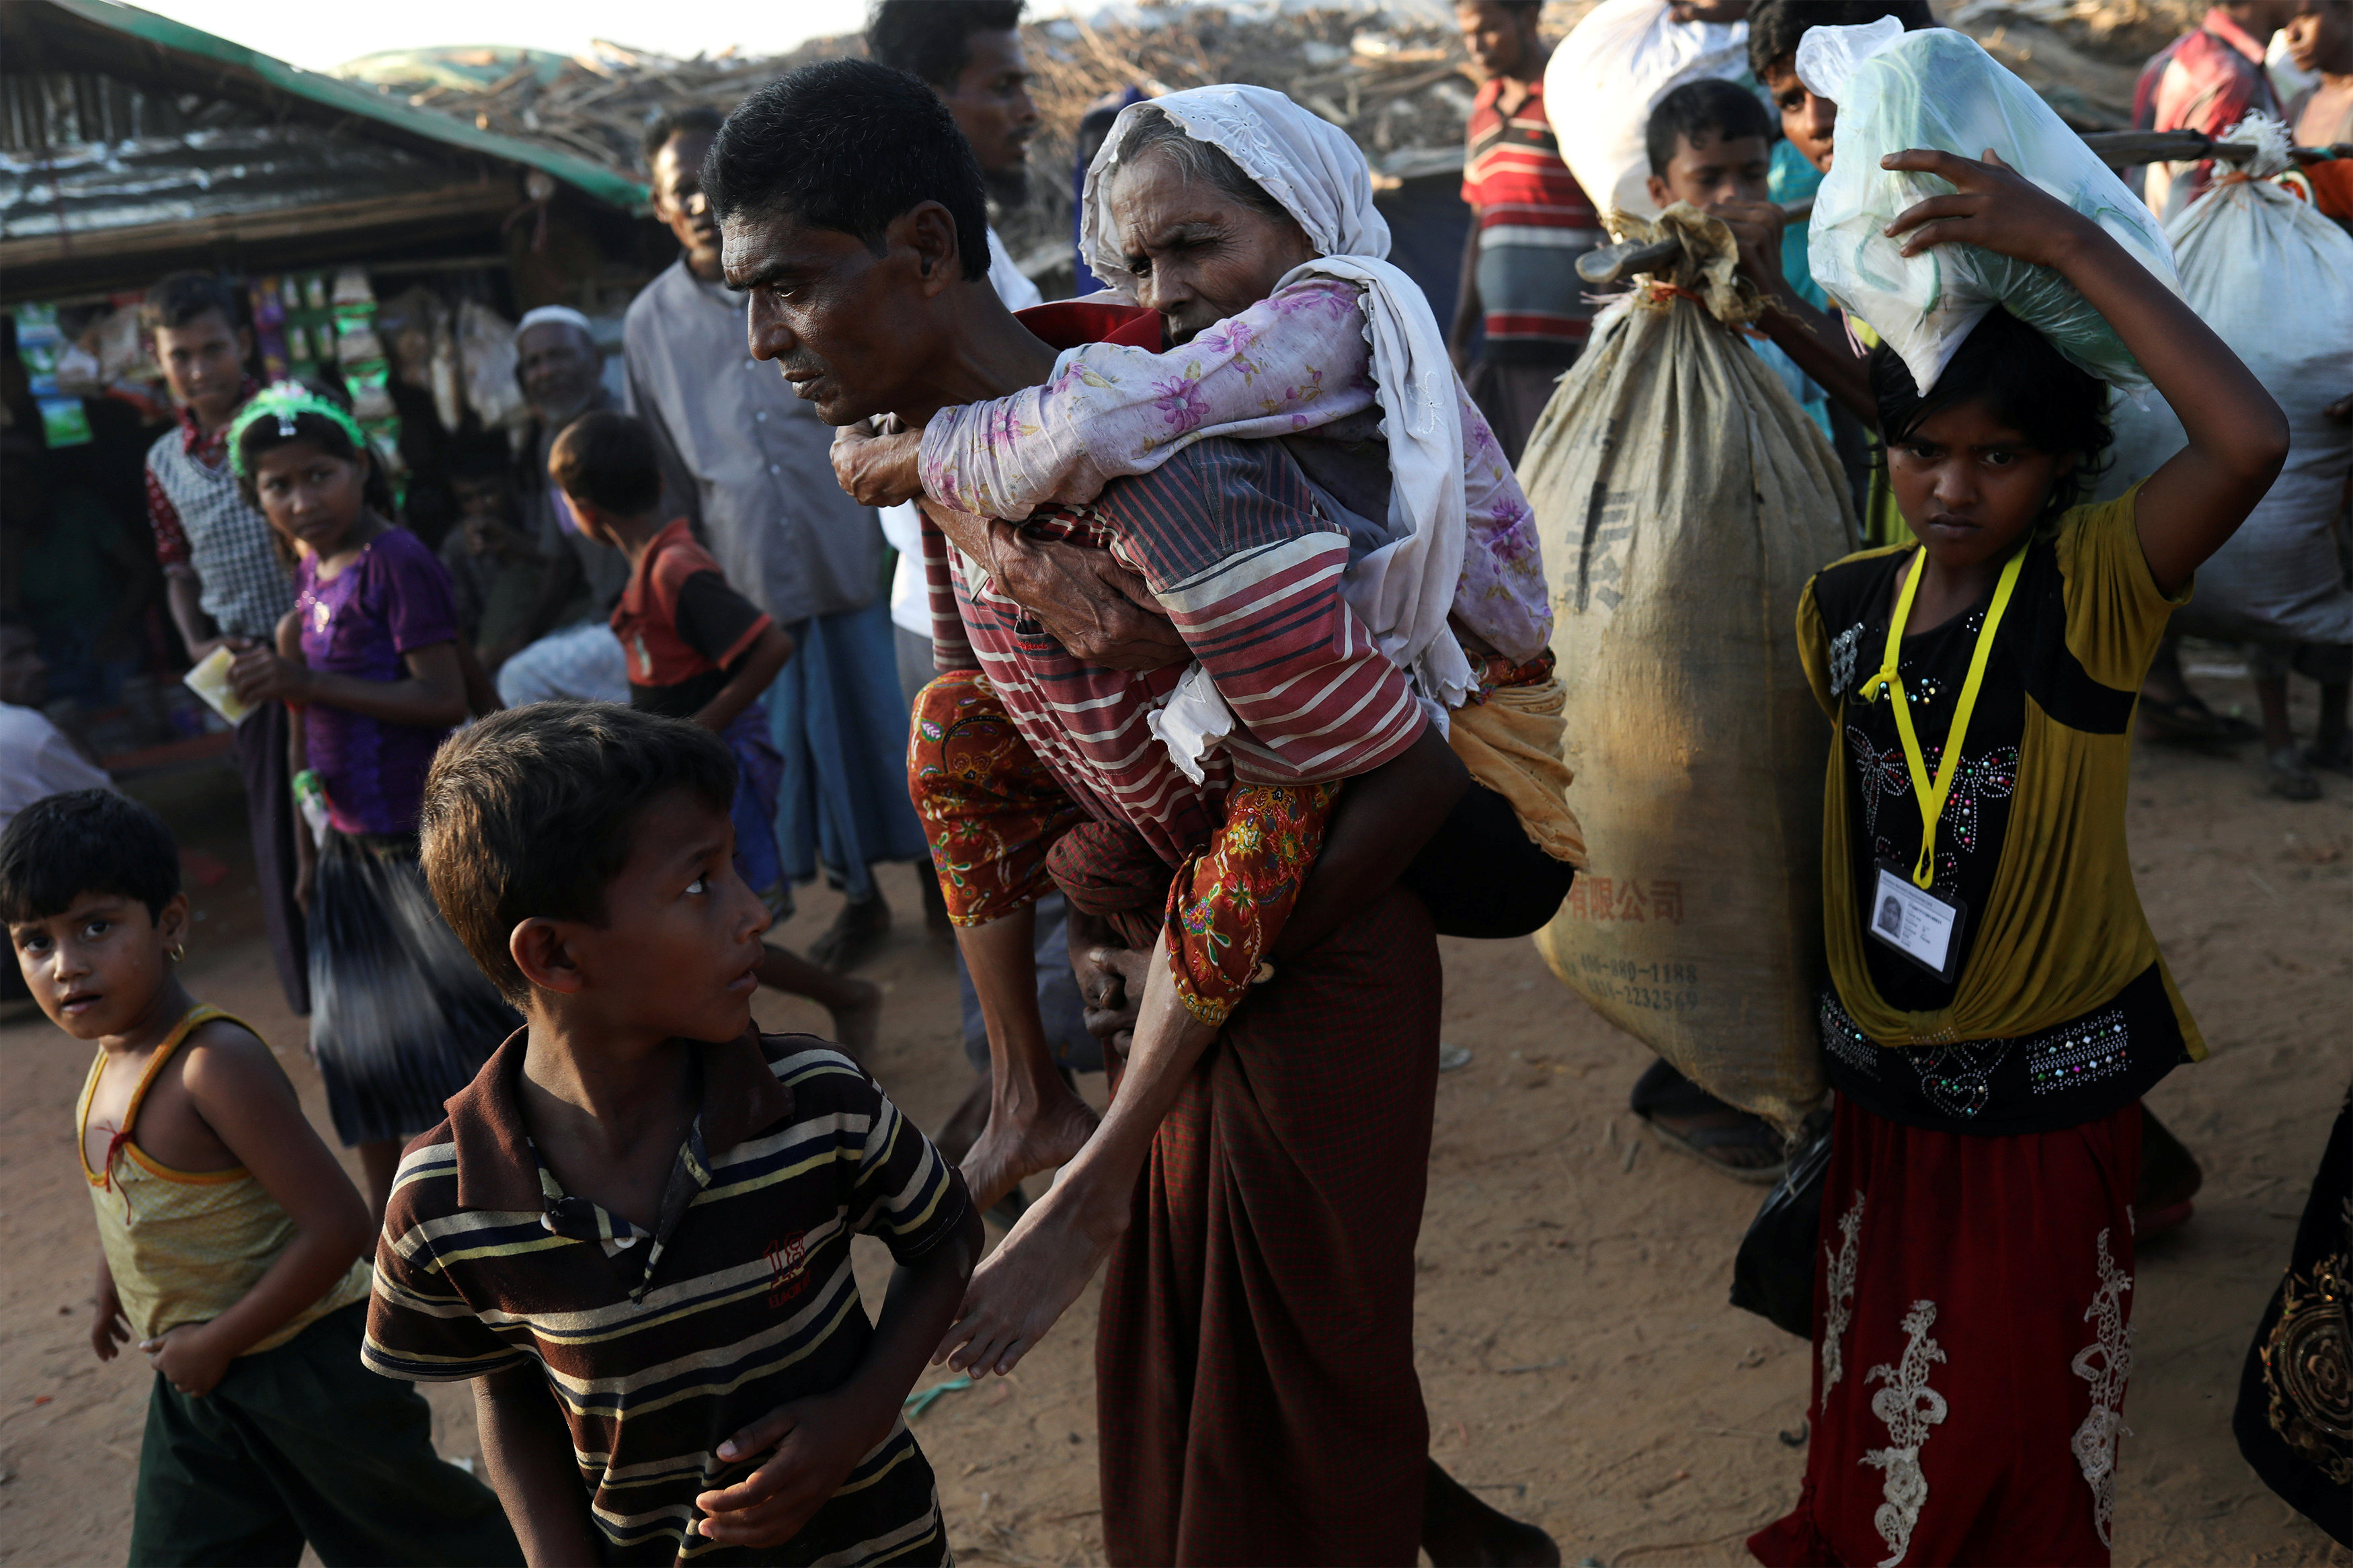 U.S. Congress members decry 'ethnic cleansing' in Myanmar; Suu Kyi doubts allegations